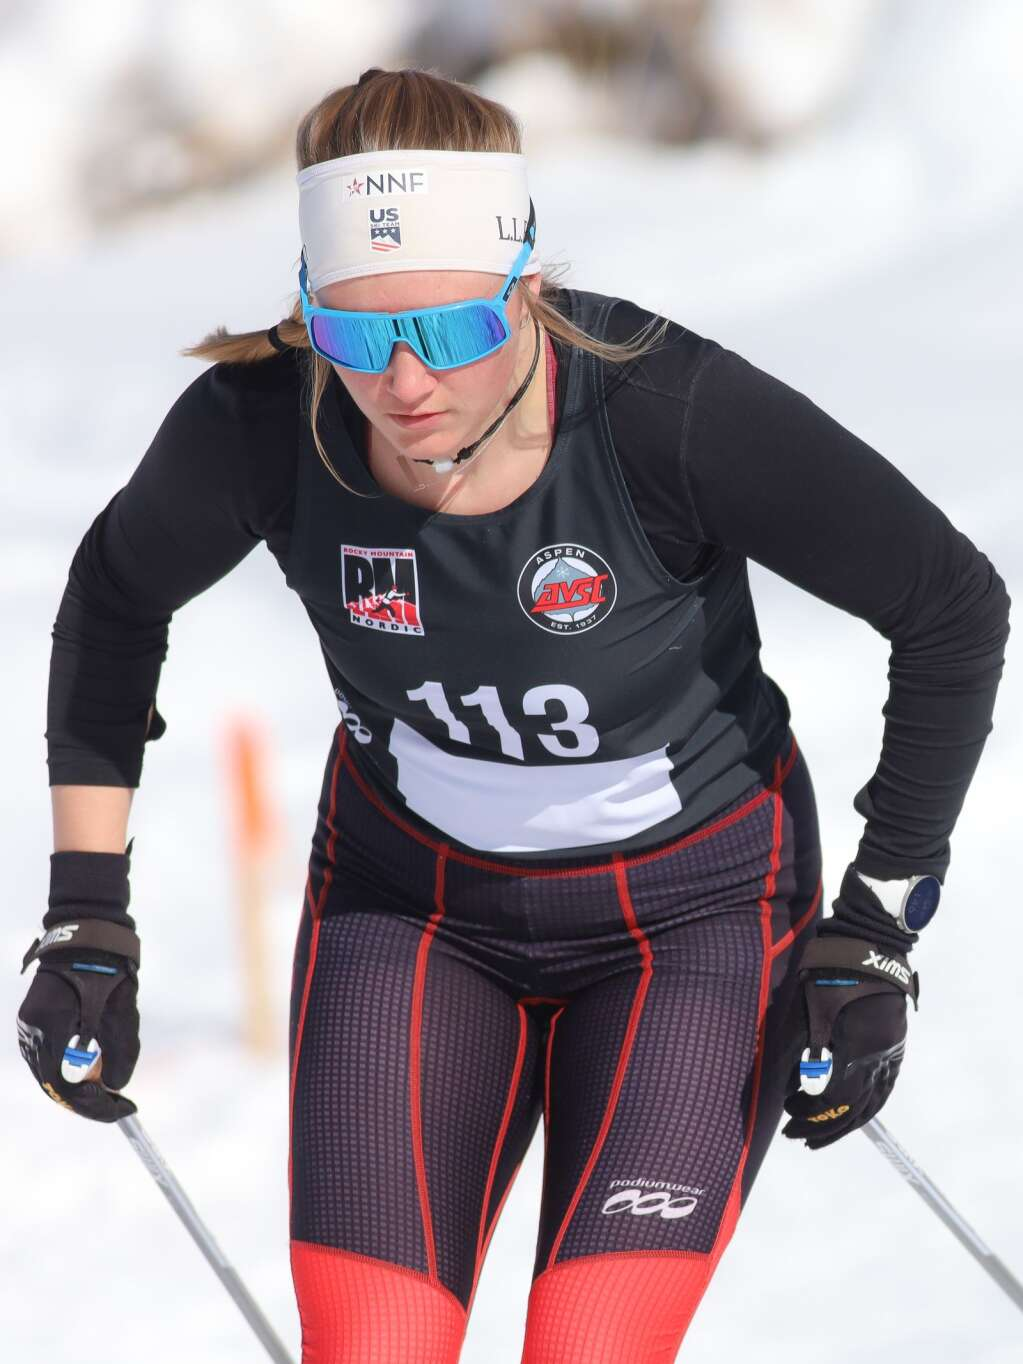 Kate Oldham competes in a cross-country ski race on Saturday, Feb. 6, 2021, near the AVSC Clubhouse. Photo by Austin Colbert/The Aspen Times.